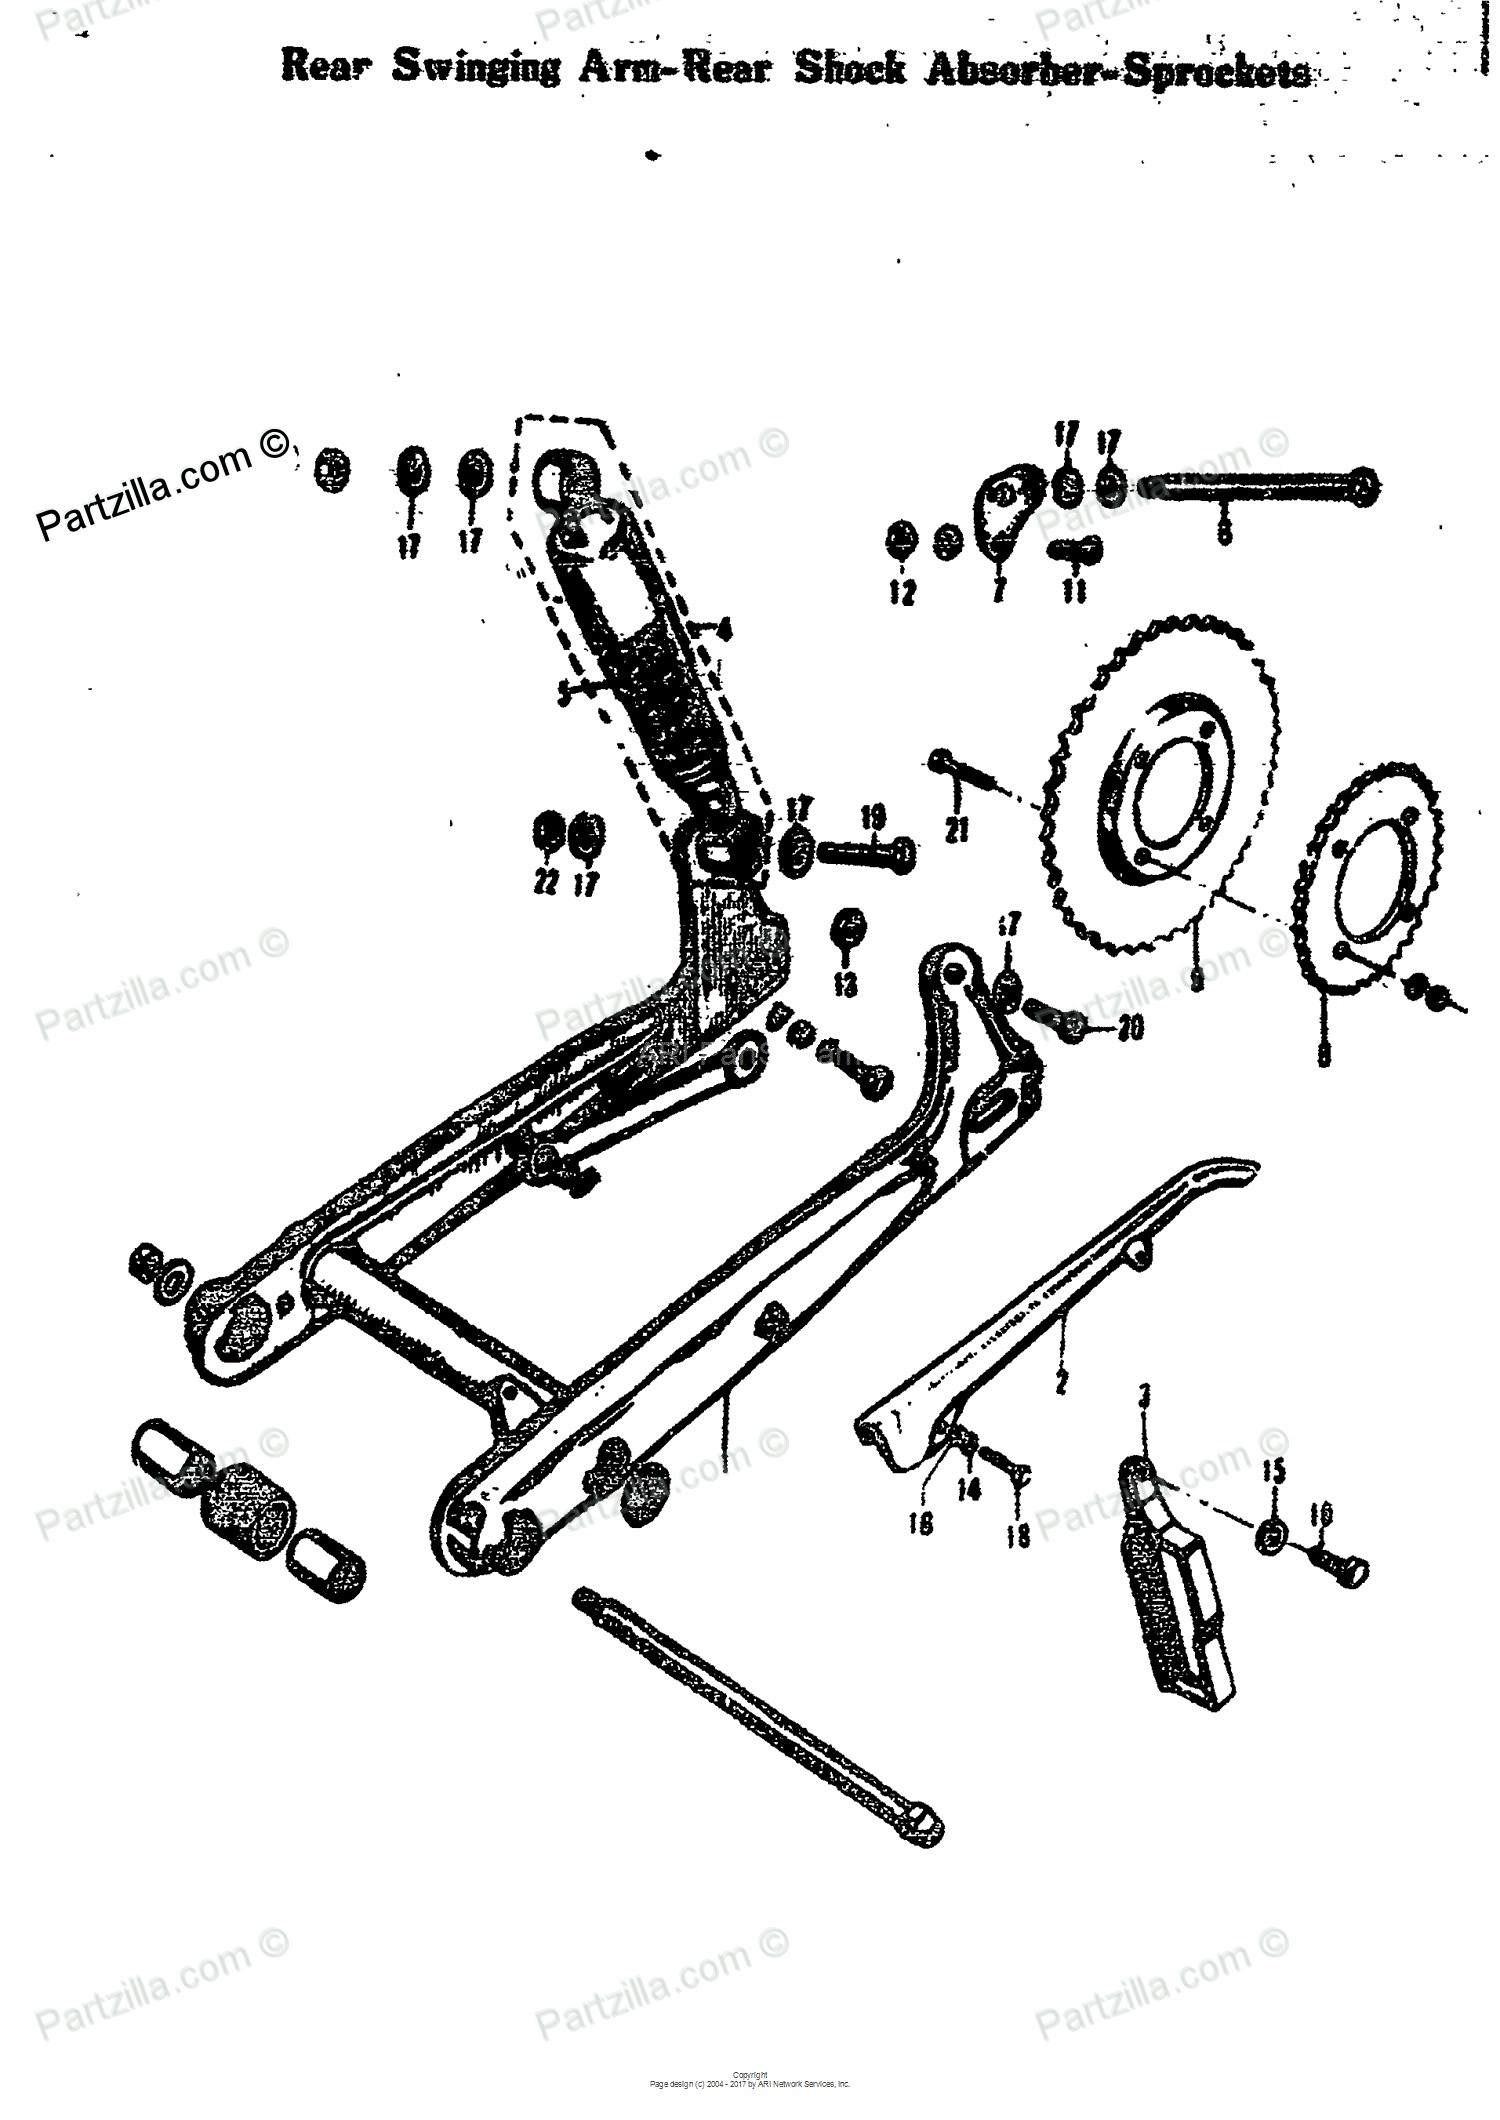 Car Shock Absorber Diagram Suzuki Motorcycle 1968 Oem Parts Diagram for Rear Swinging Arm Rear Of Car Shock Absorber Diagram